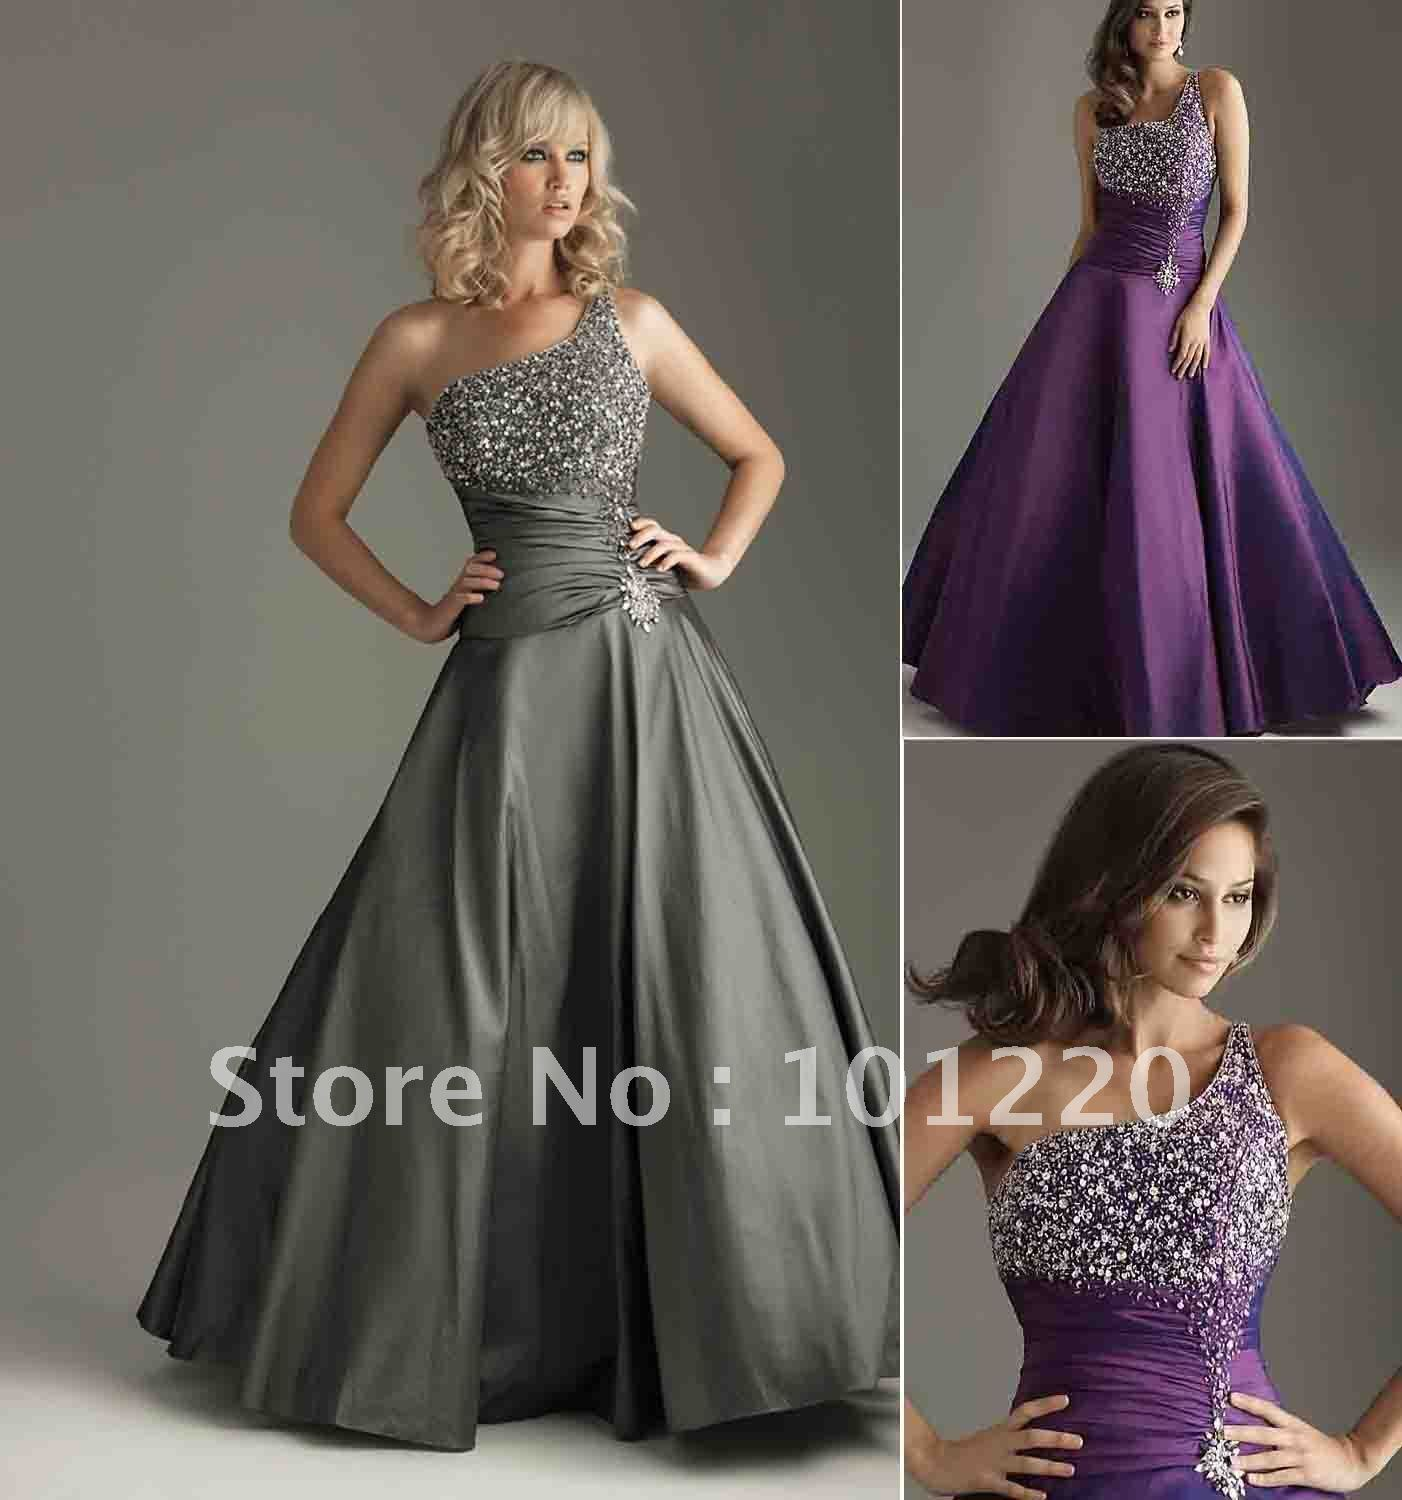 Discount Free Shipping Cwds078 One Shoulder With: Free Shipping Custom Made!Elegant Floor Length One